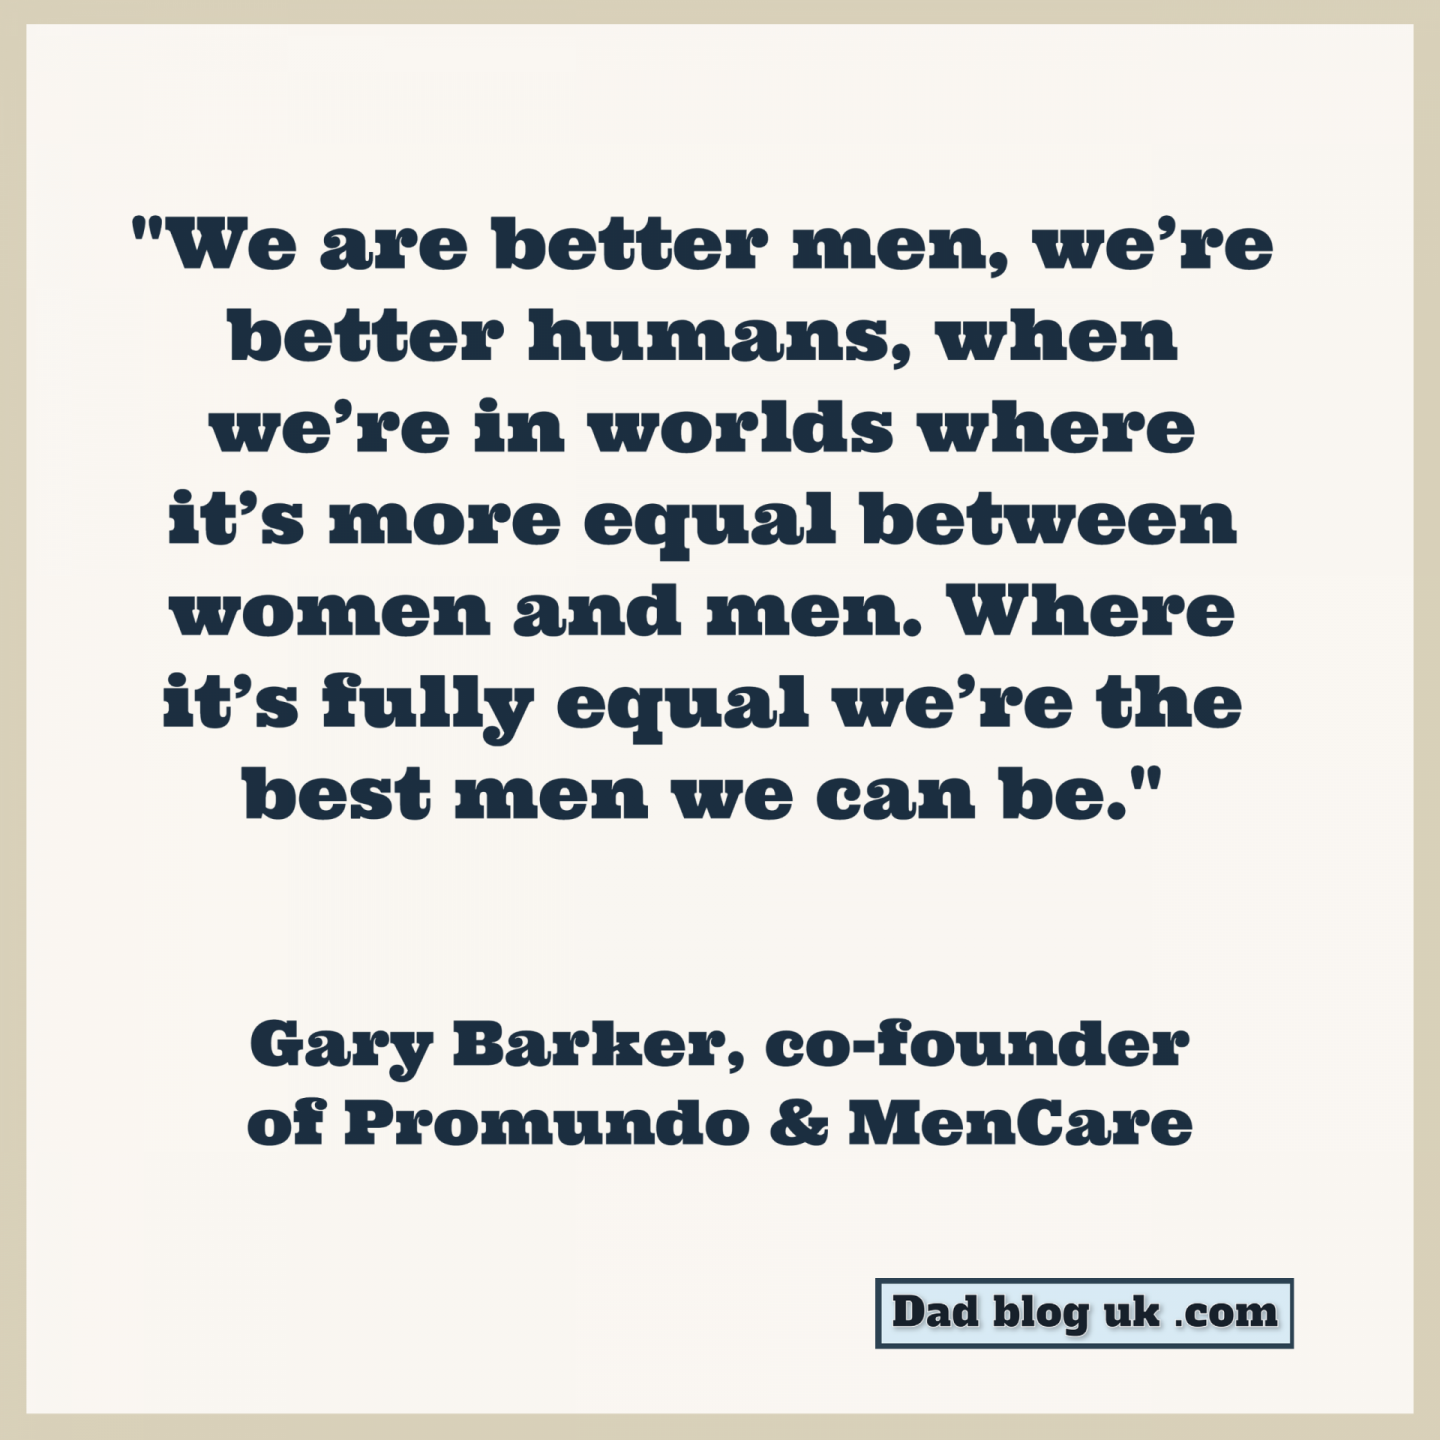 Quote from Gary Barker of Prmundo and Mencare